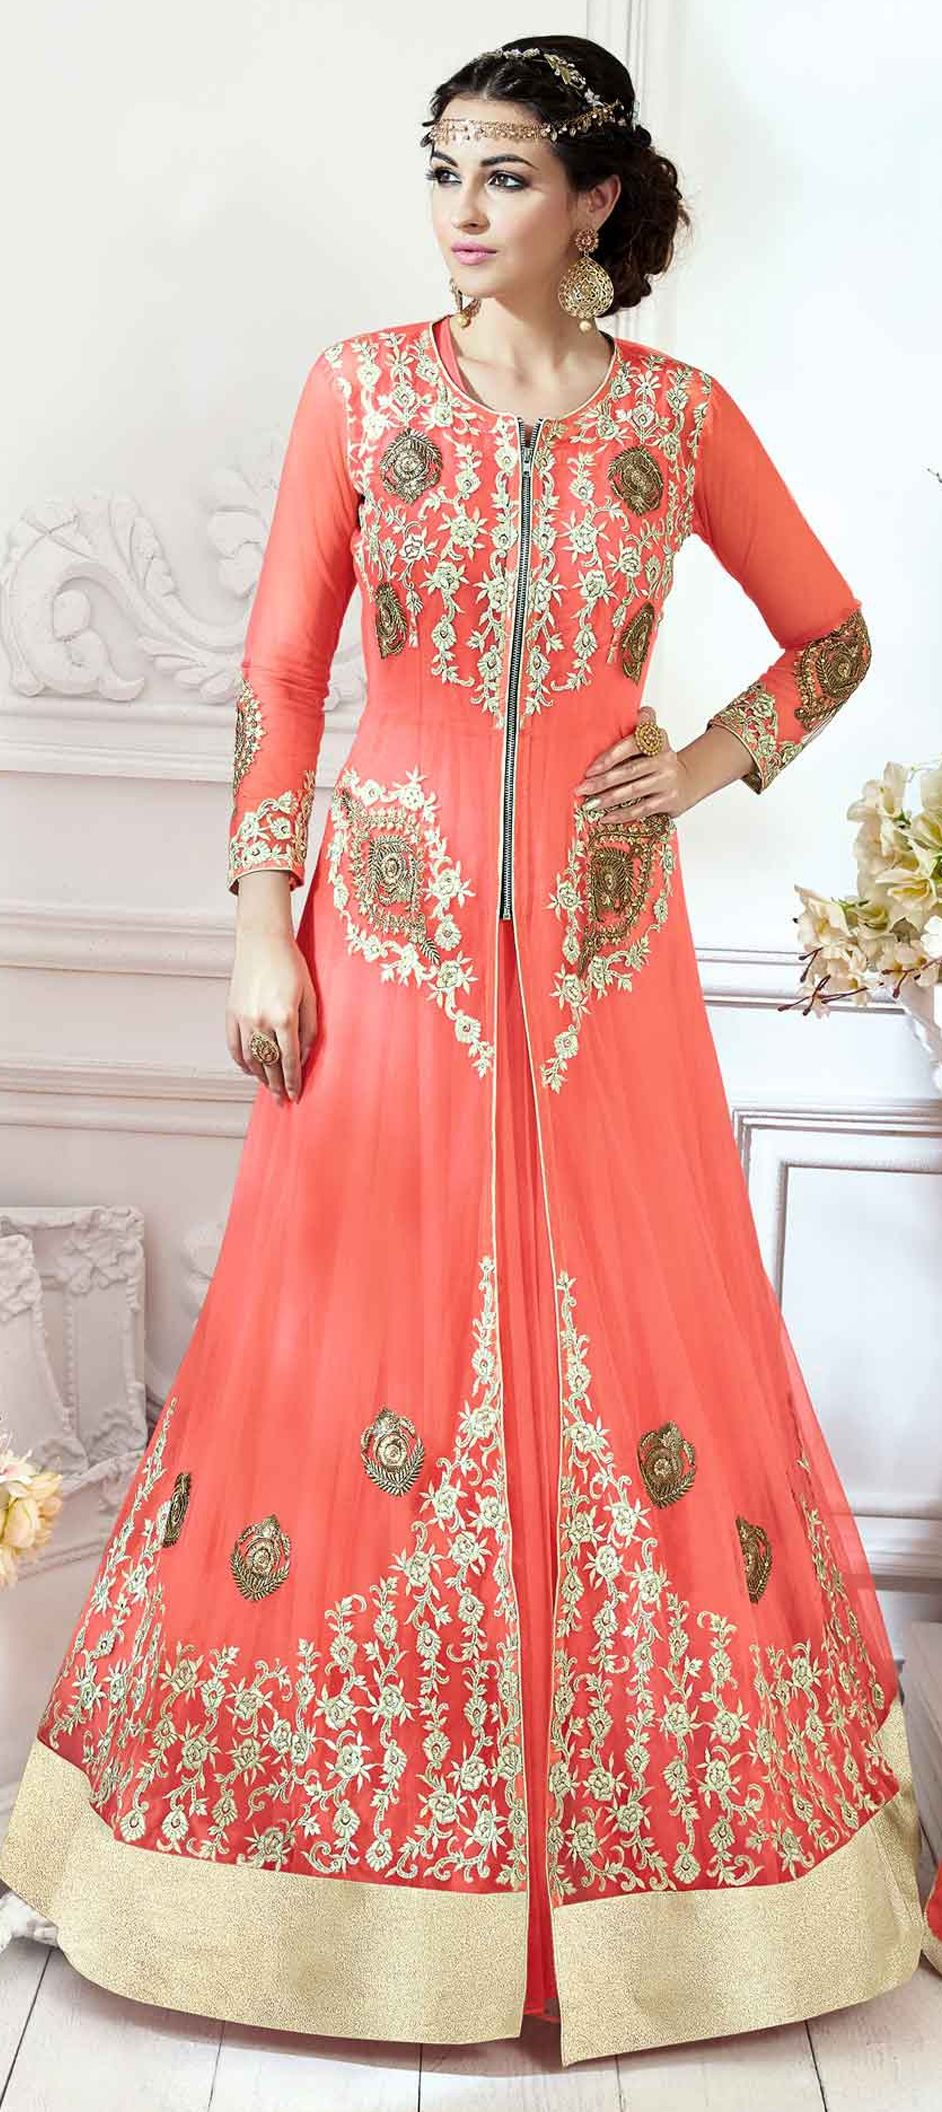 602043523b 900139: Pink and Majenta color family unstitched Anarkali Suits .